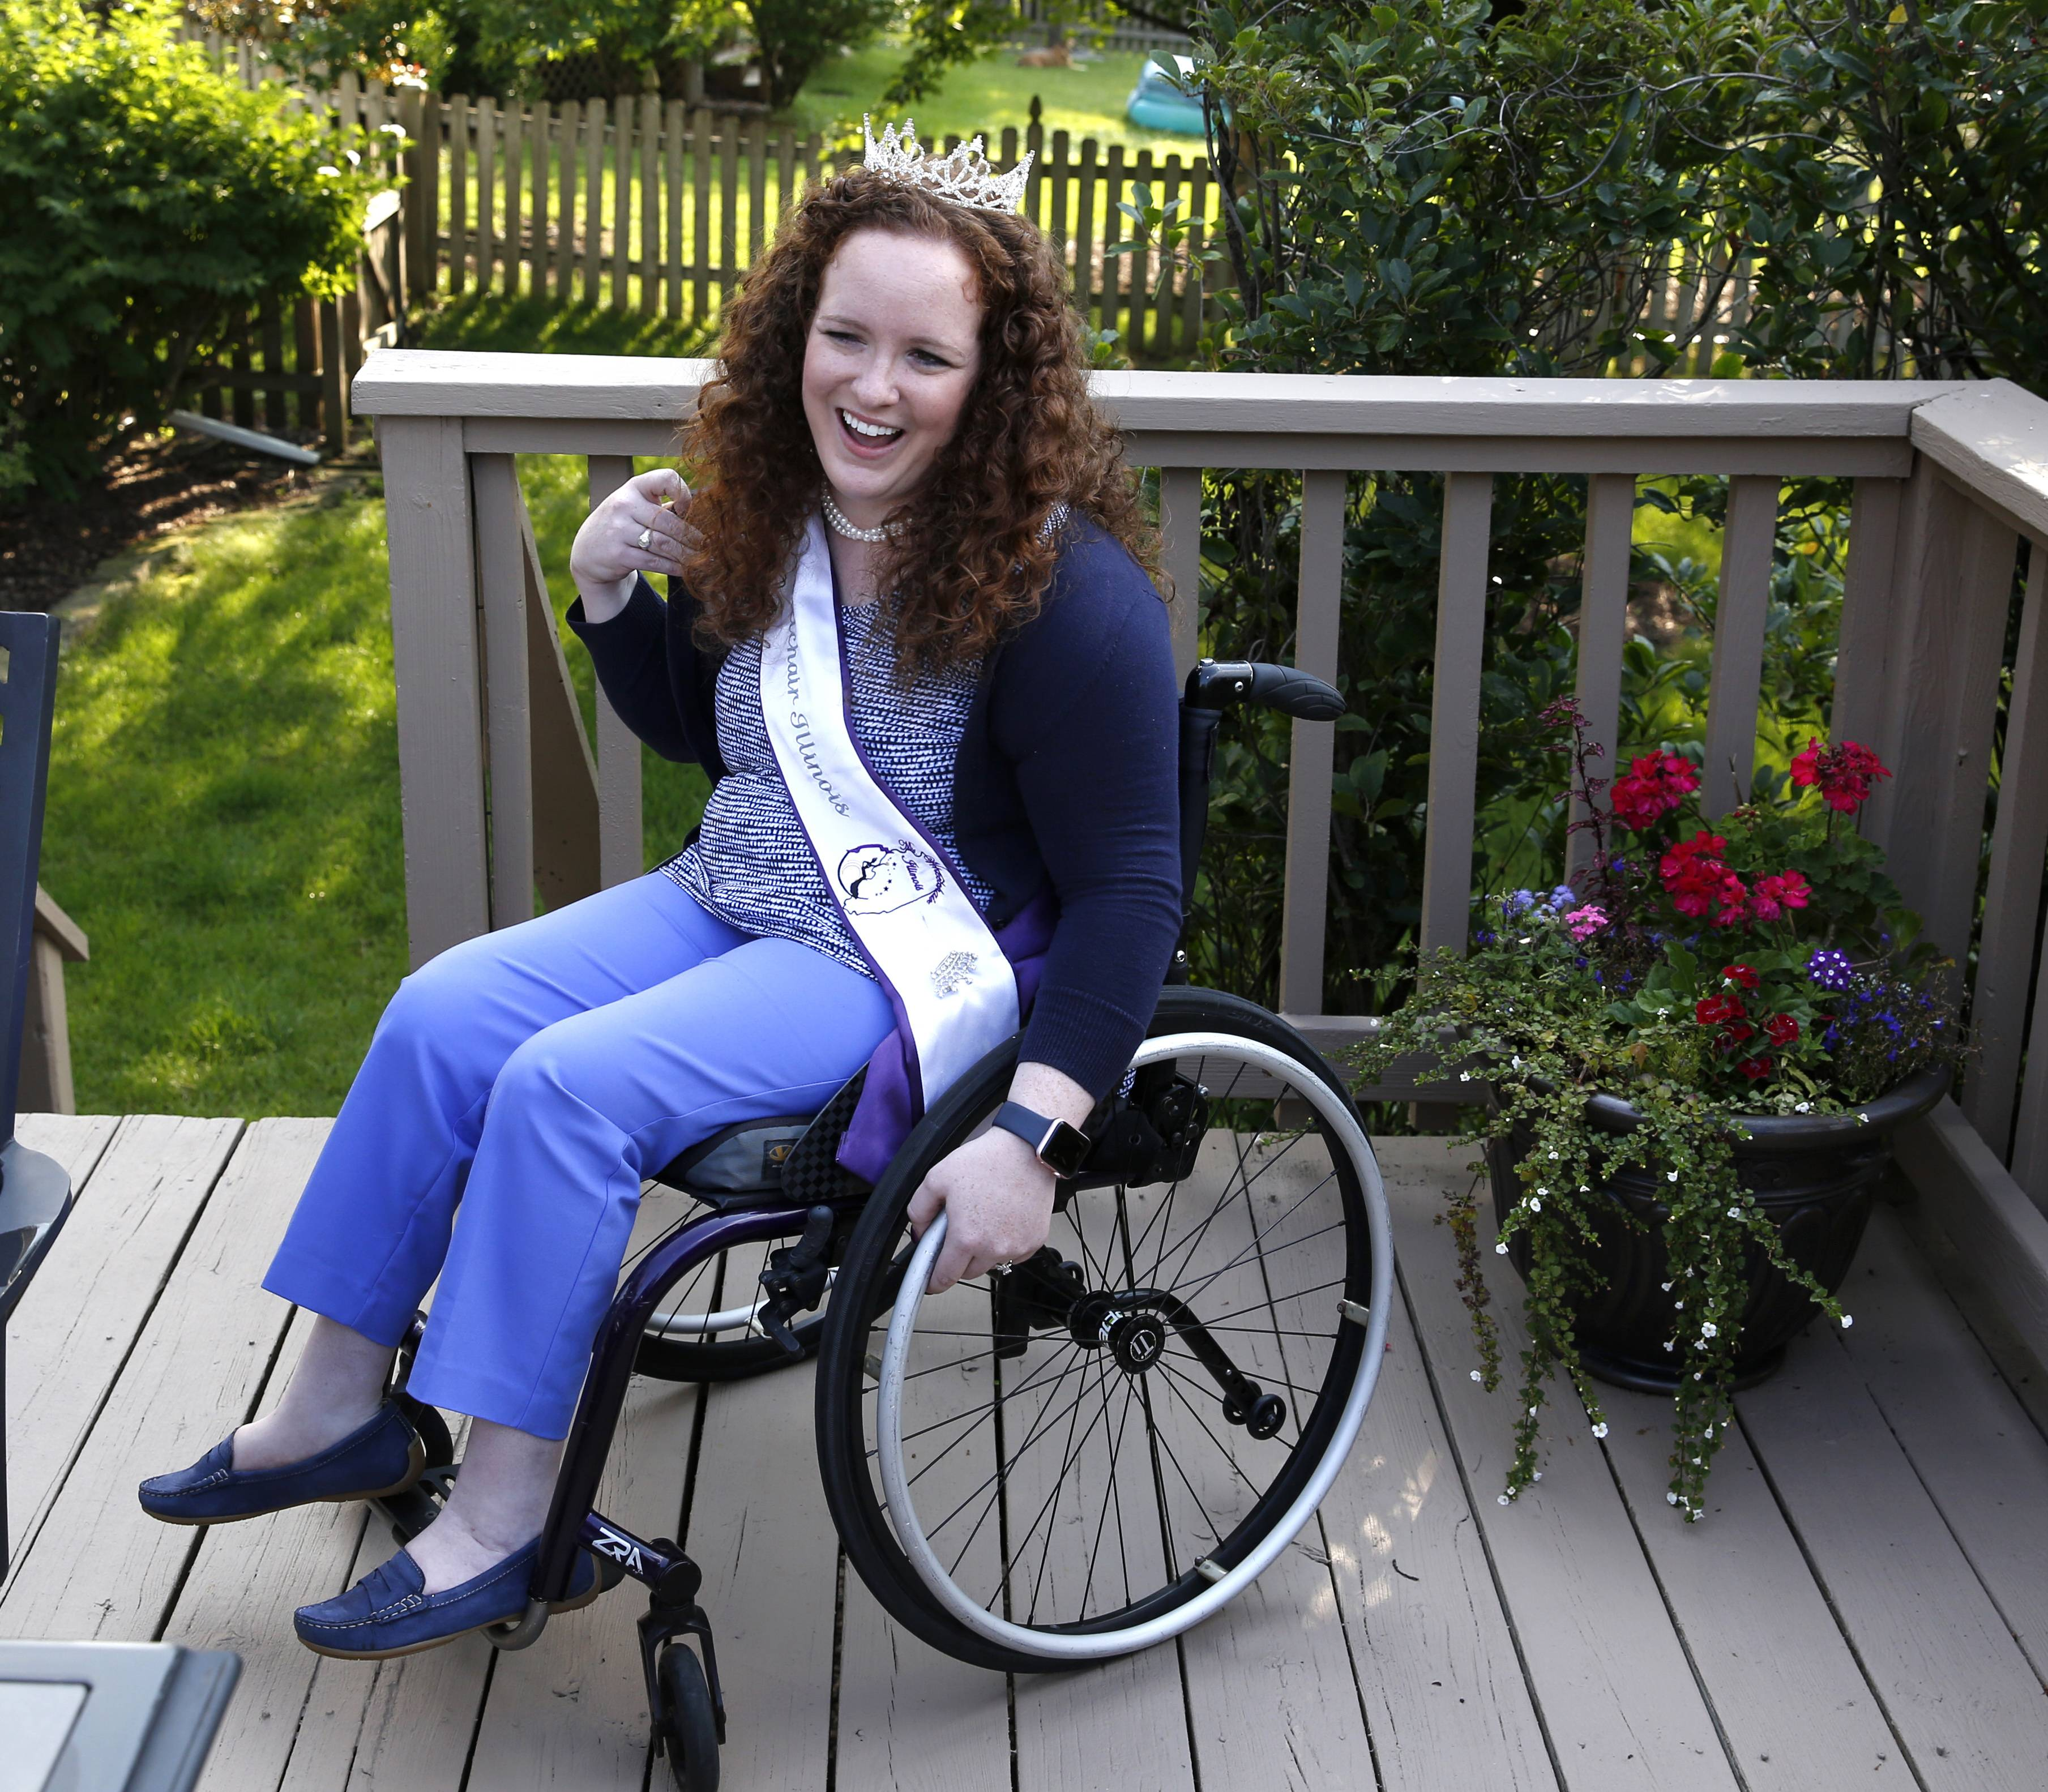 Shannon Webster of Naperville was not named Ms. Wheelchair America, but as the holder of the Illinois crown for 2017, she won an award for giving the best speech about her platform of employment for people with disabilities.